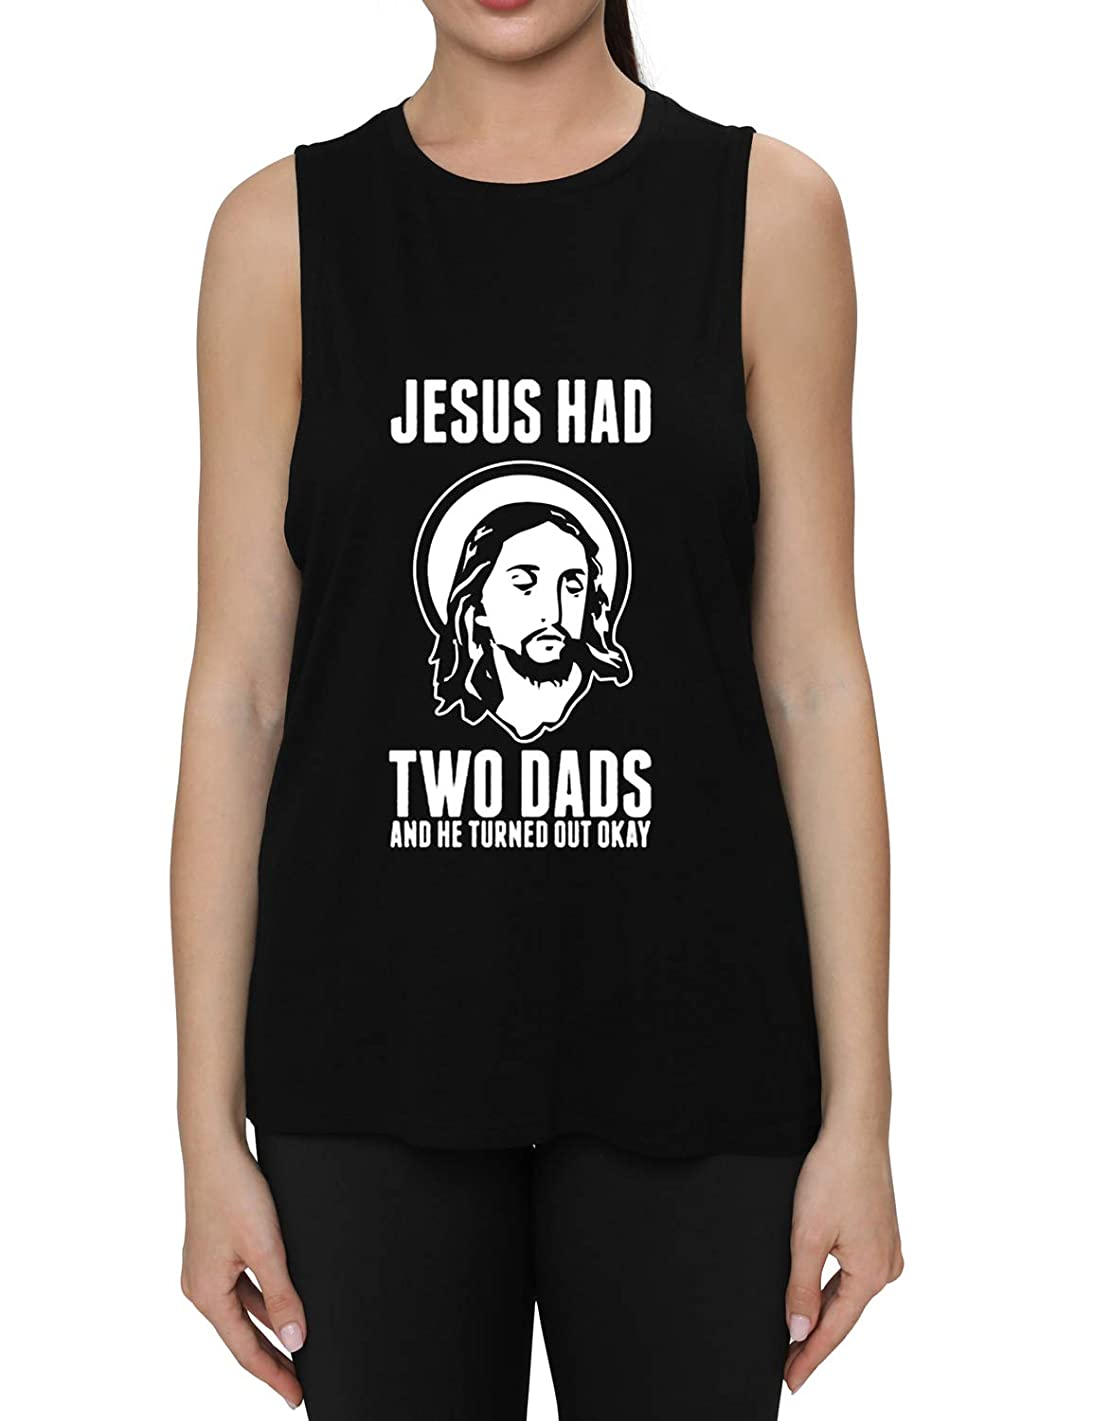 Fannoo Womens Workout Muscle Tank Tops-Humor Funny Saying Fitness Gym Religion Graphic Sleeveless Shirts for Women